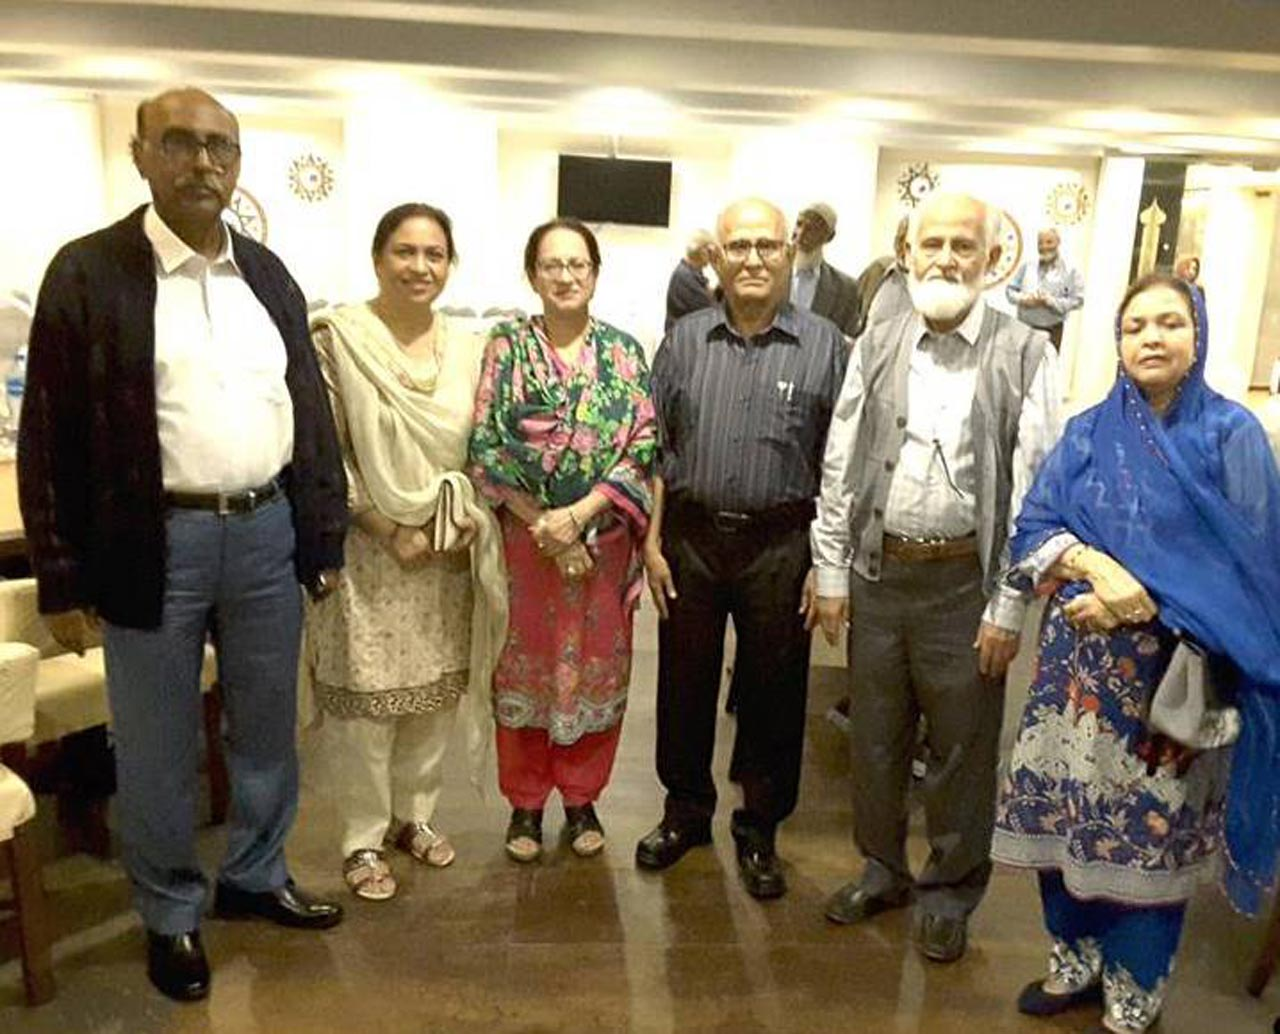 Mr & Mrs. Sami Khan, Mrs. Manzoor Shaikh, Mr. & Mrs. Habib Ibrahim